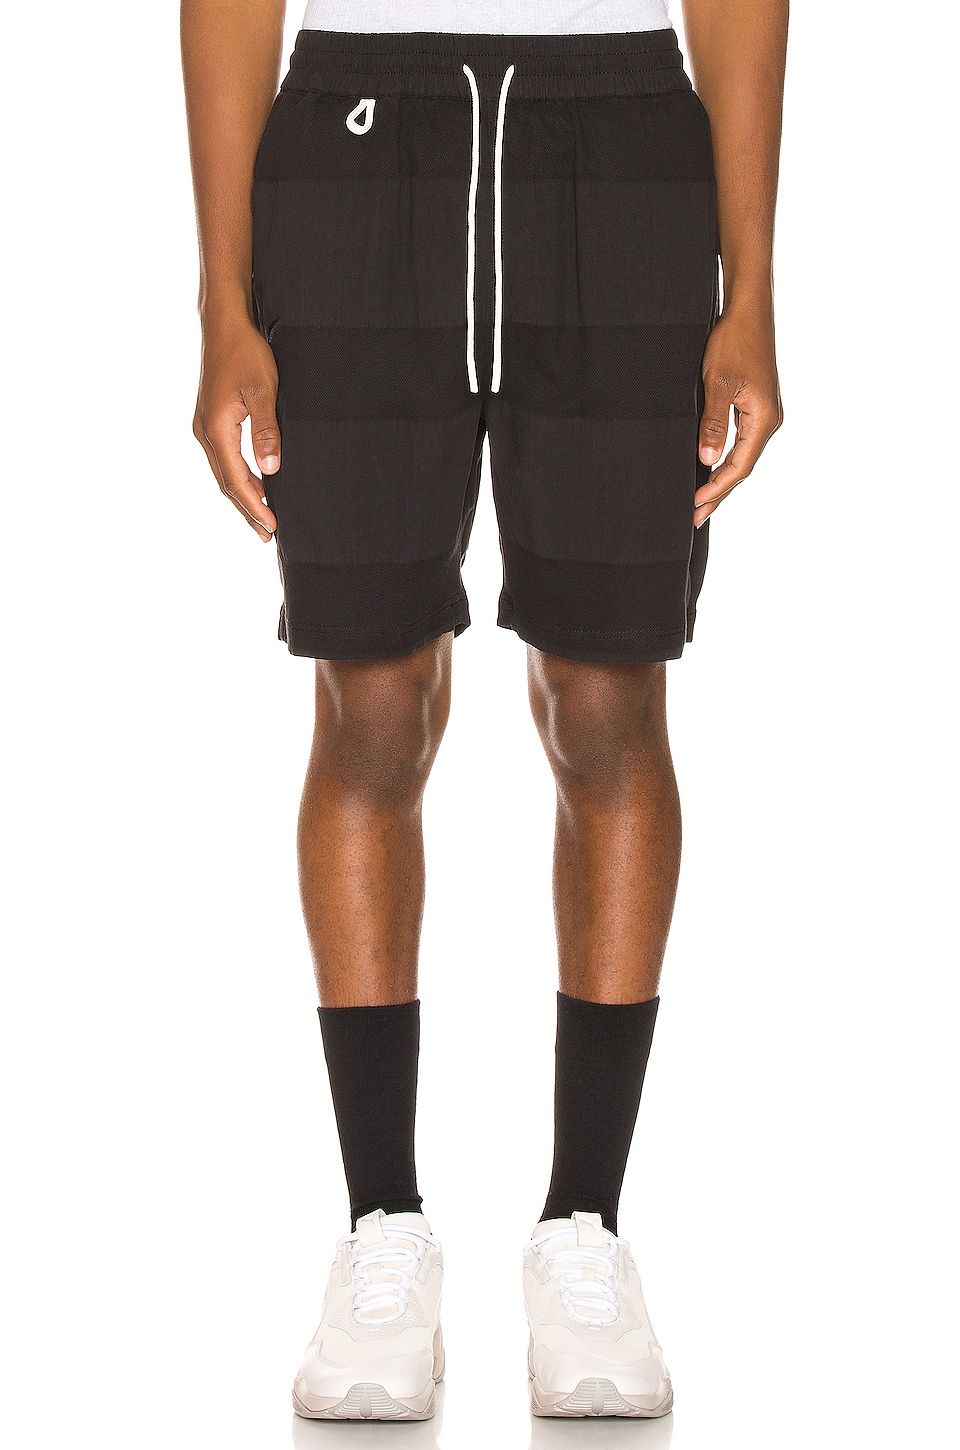 Publish Alf Shorts in Black